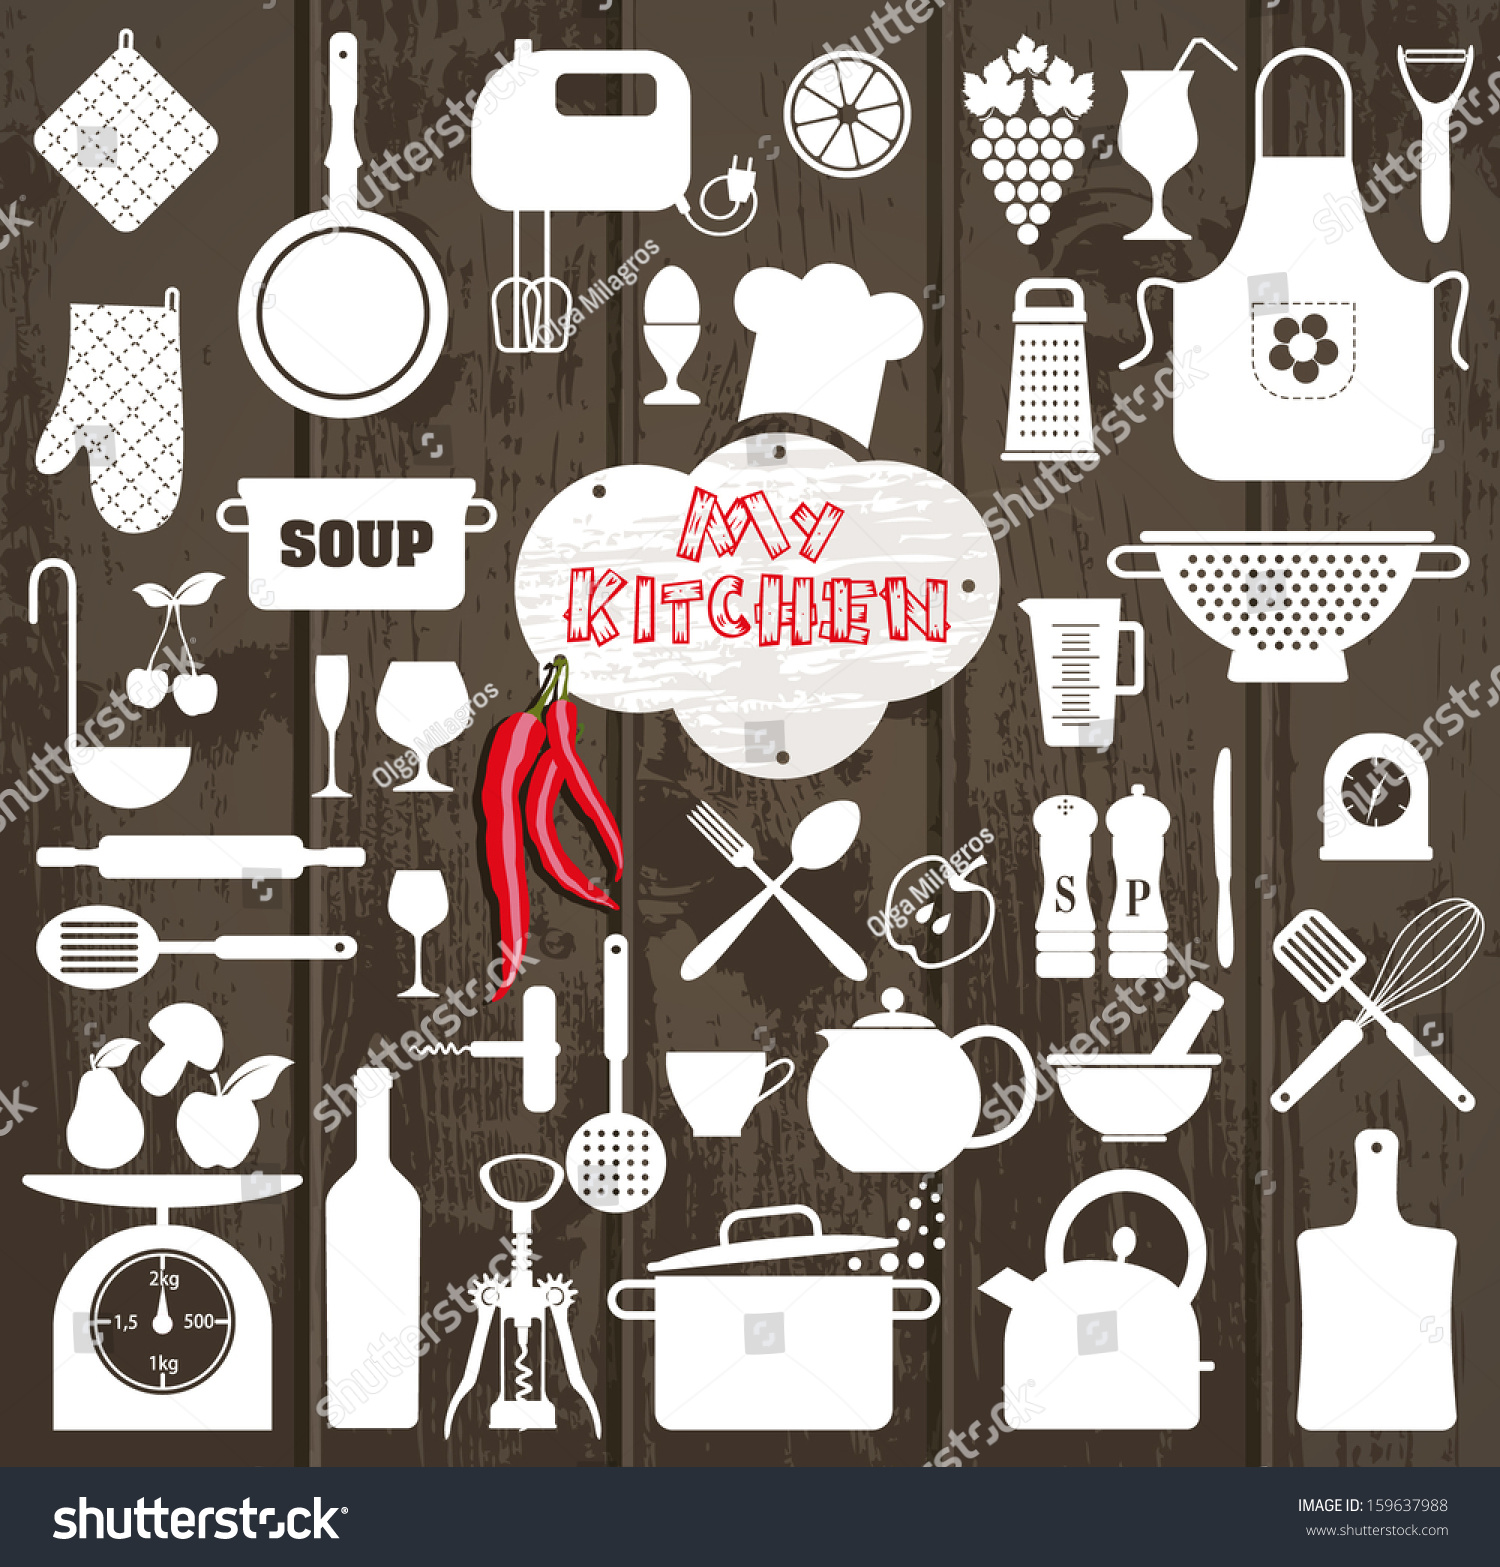 Kitchen set icon stock vector 159637988 shutterstock for Kitchen set vector